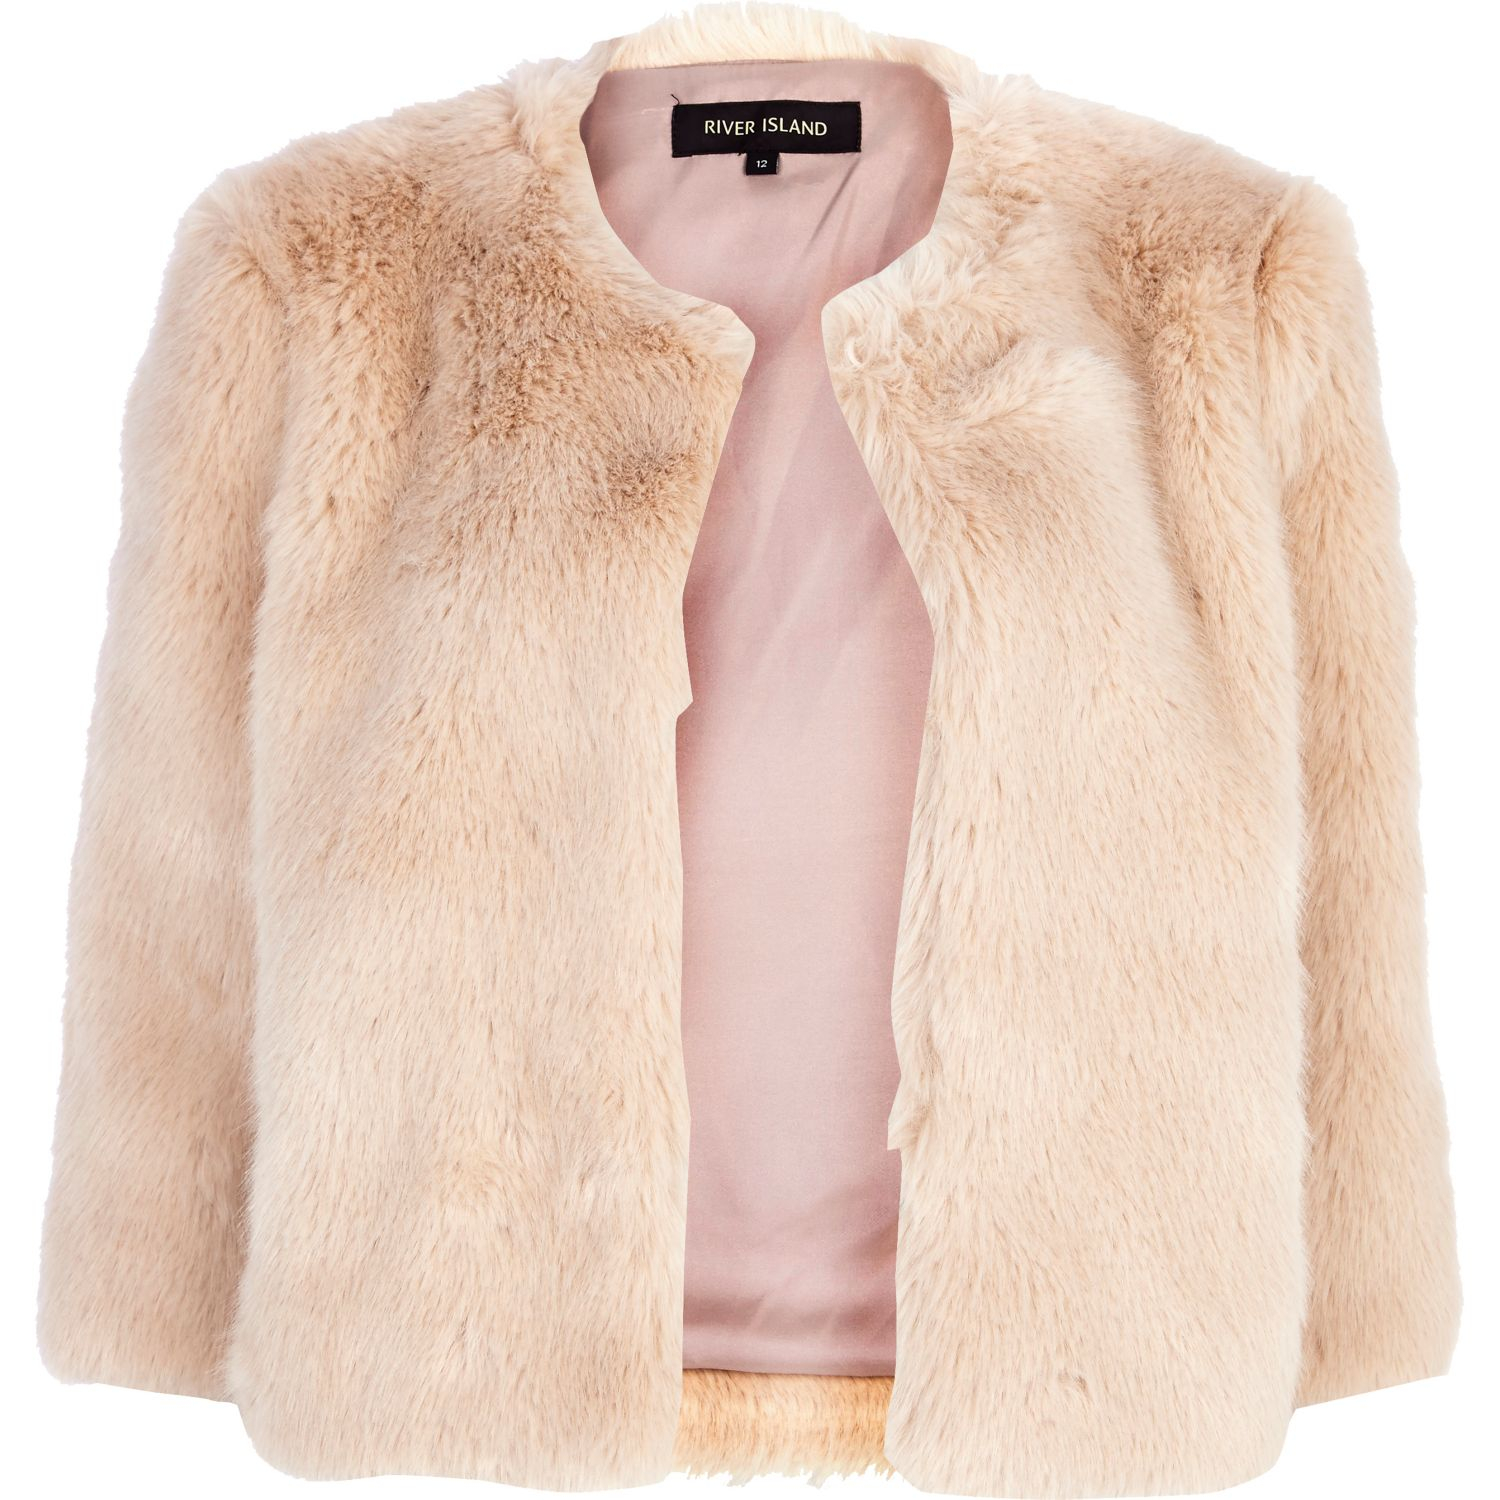 226ffc6ccad River Island Light Pink Cropped Faux Fur Coat in Pink - Lyst